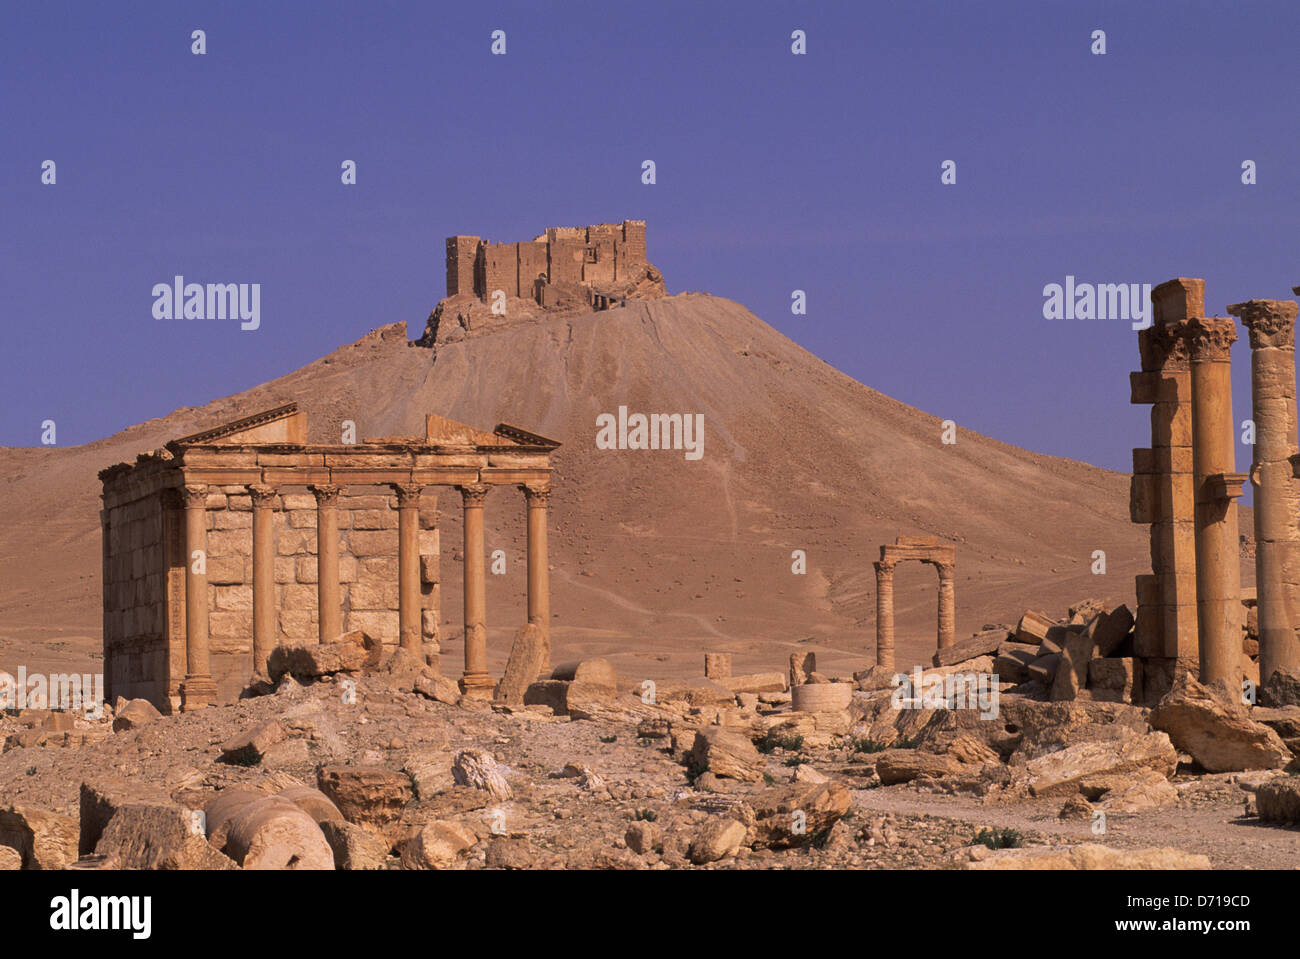 Syria, Palmyra, Ancient Roman City, Funerary Temple With Castle Of Fakhr Ud-Din In Background - Stock Image